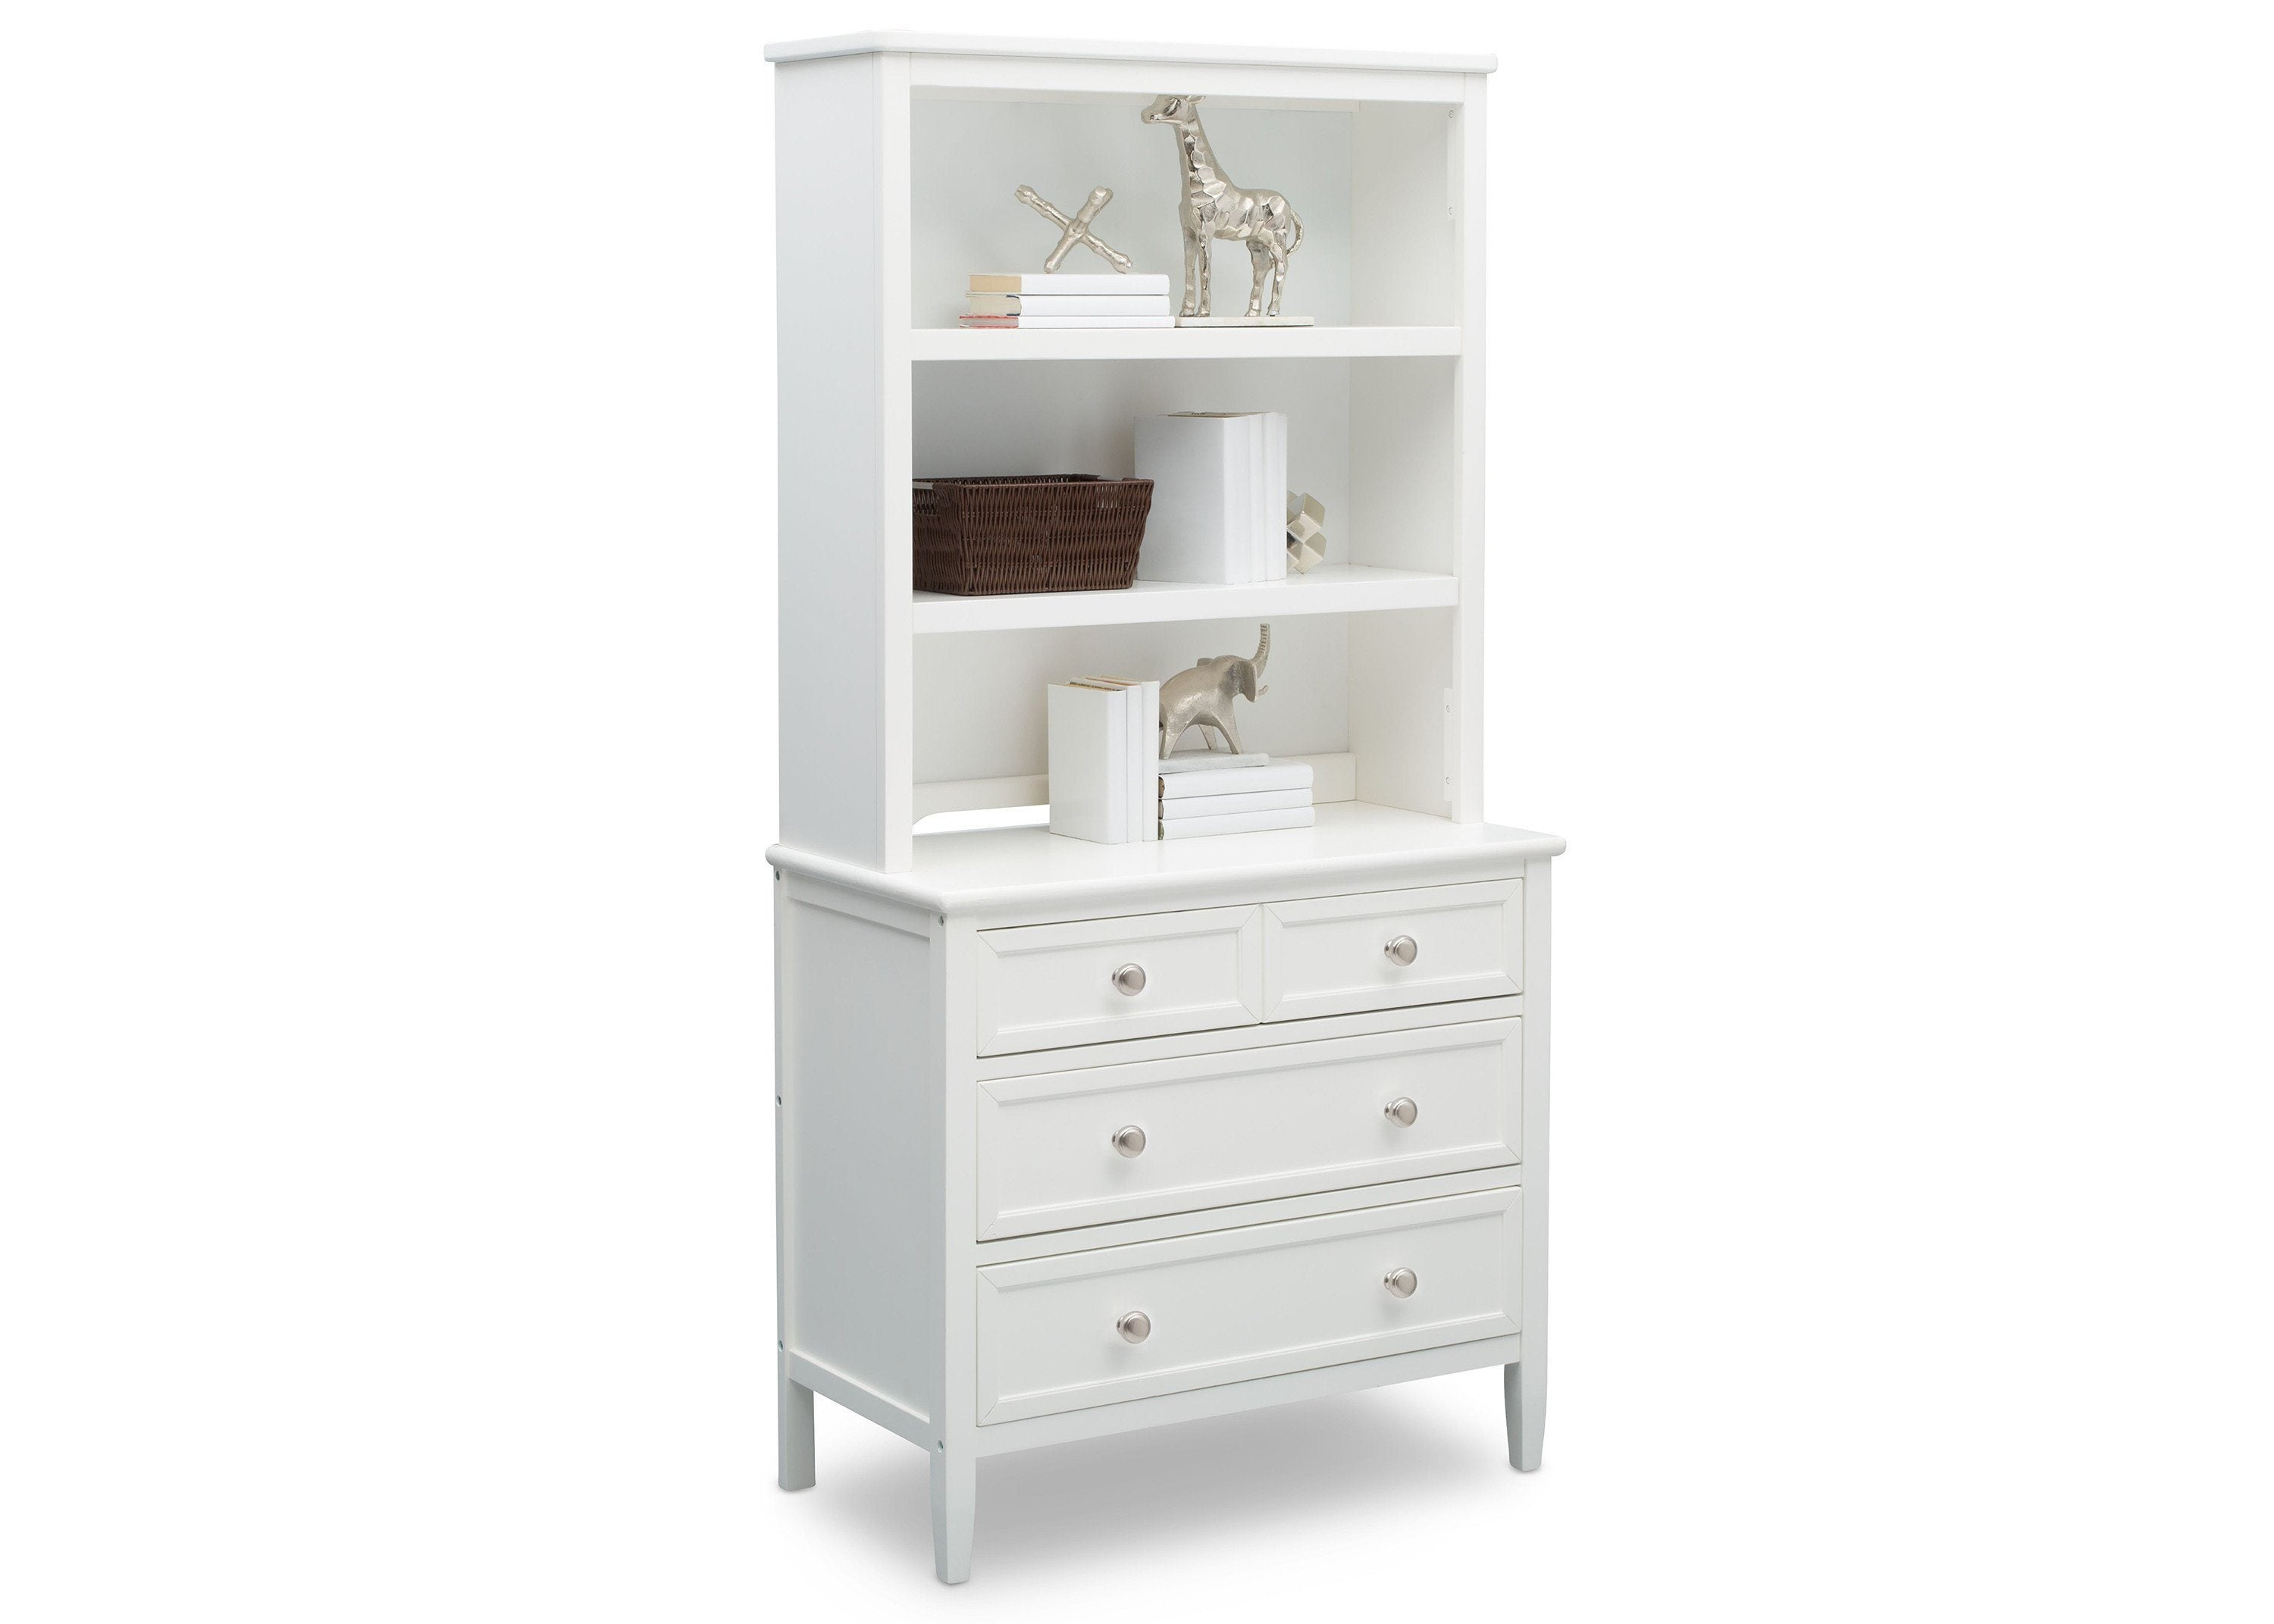 hutch cfm medford white drawer dresser hayneedle munire optional product with